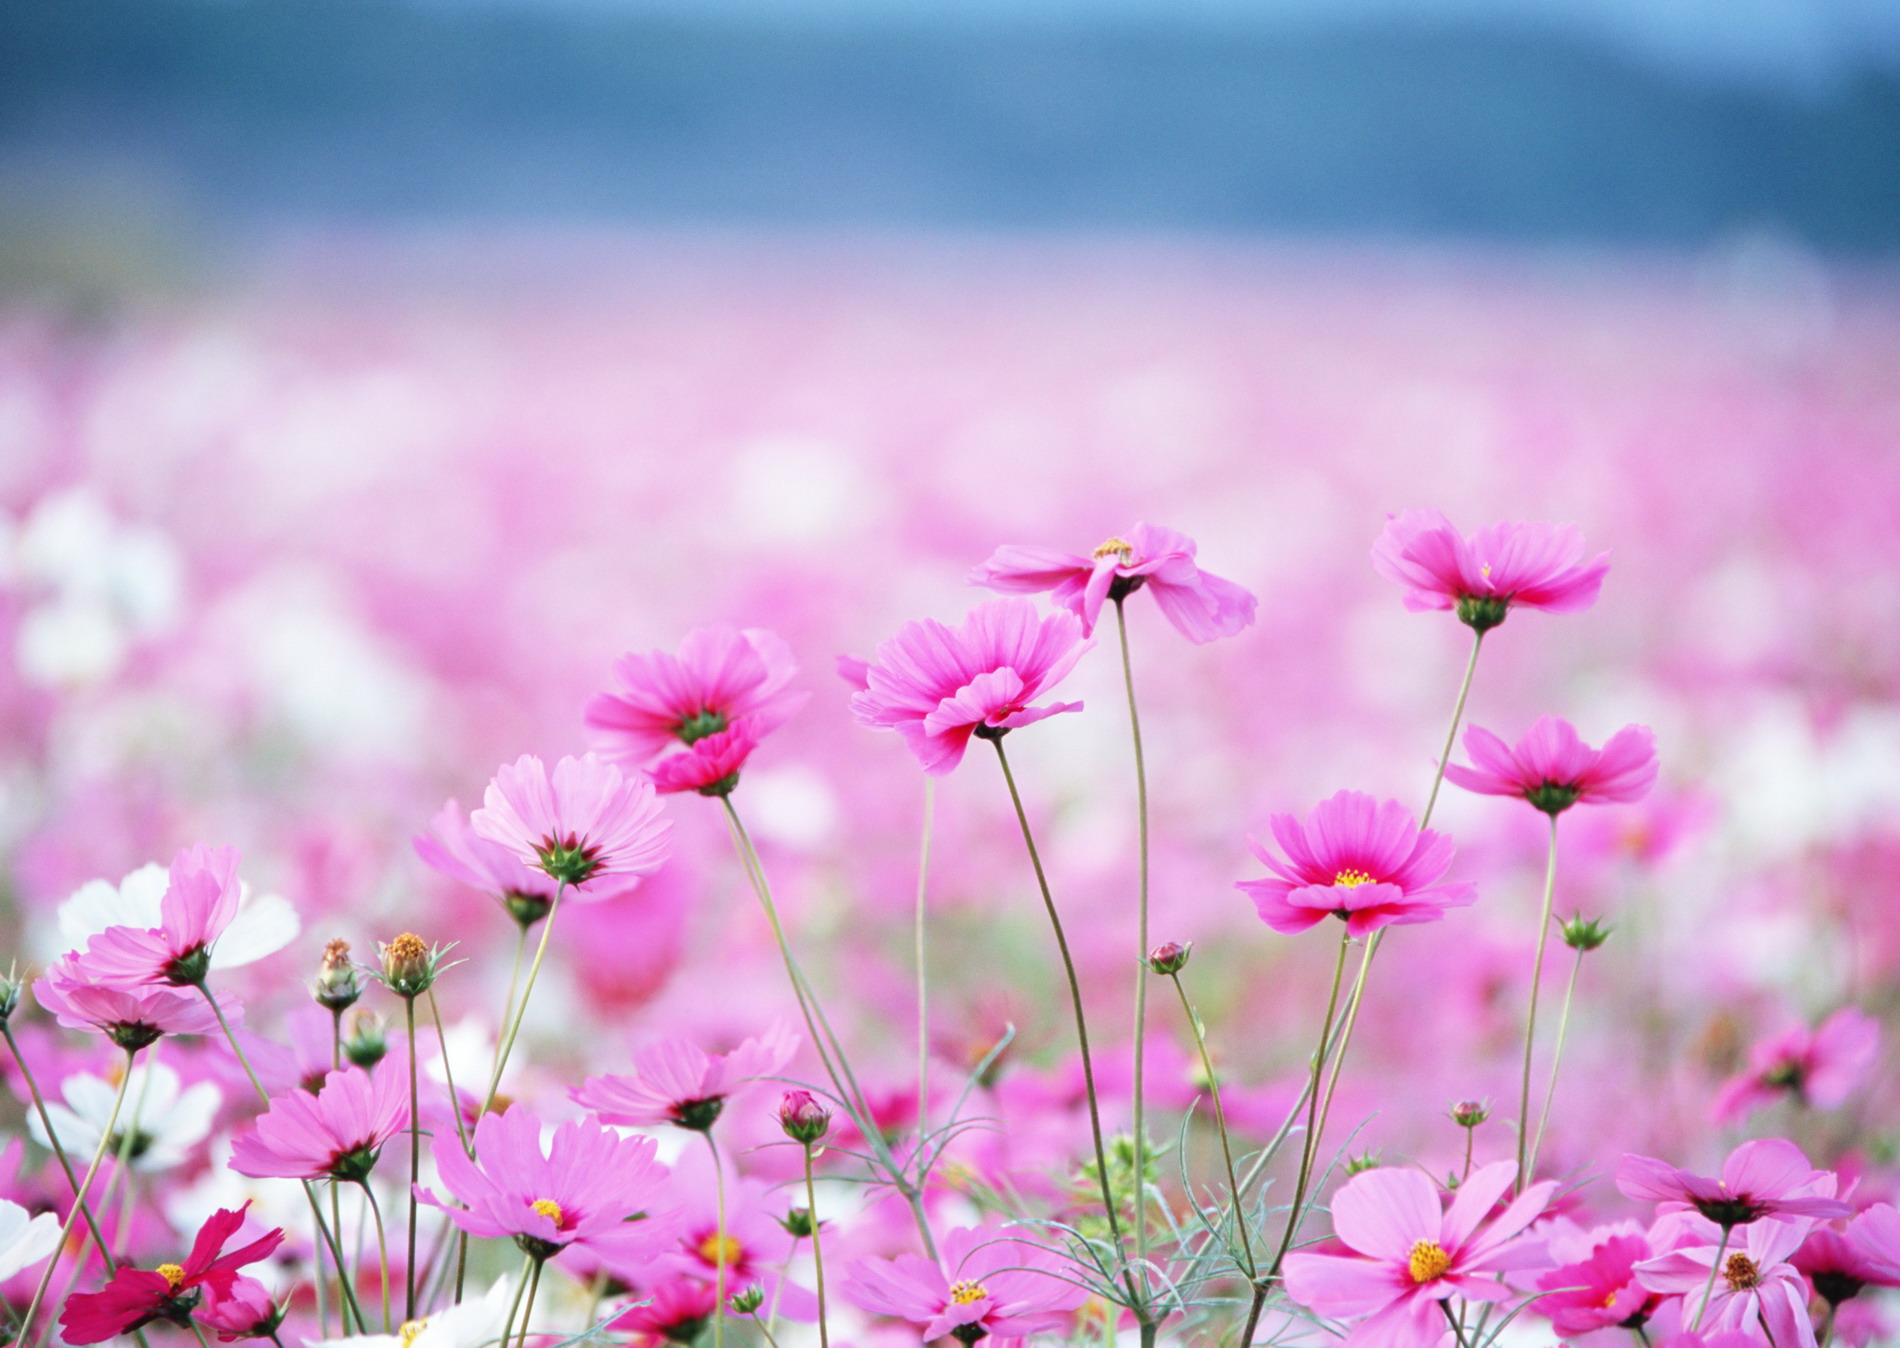 http://basik.ru/images/field_with_flowers/short_field_with_flowers.jpg